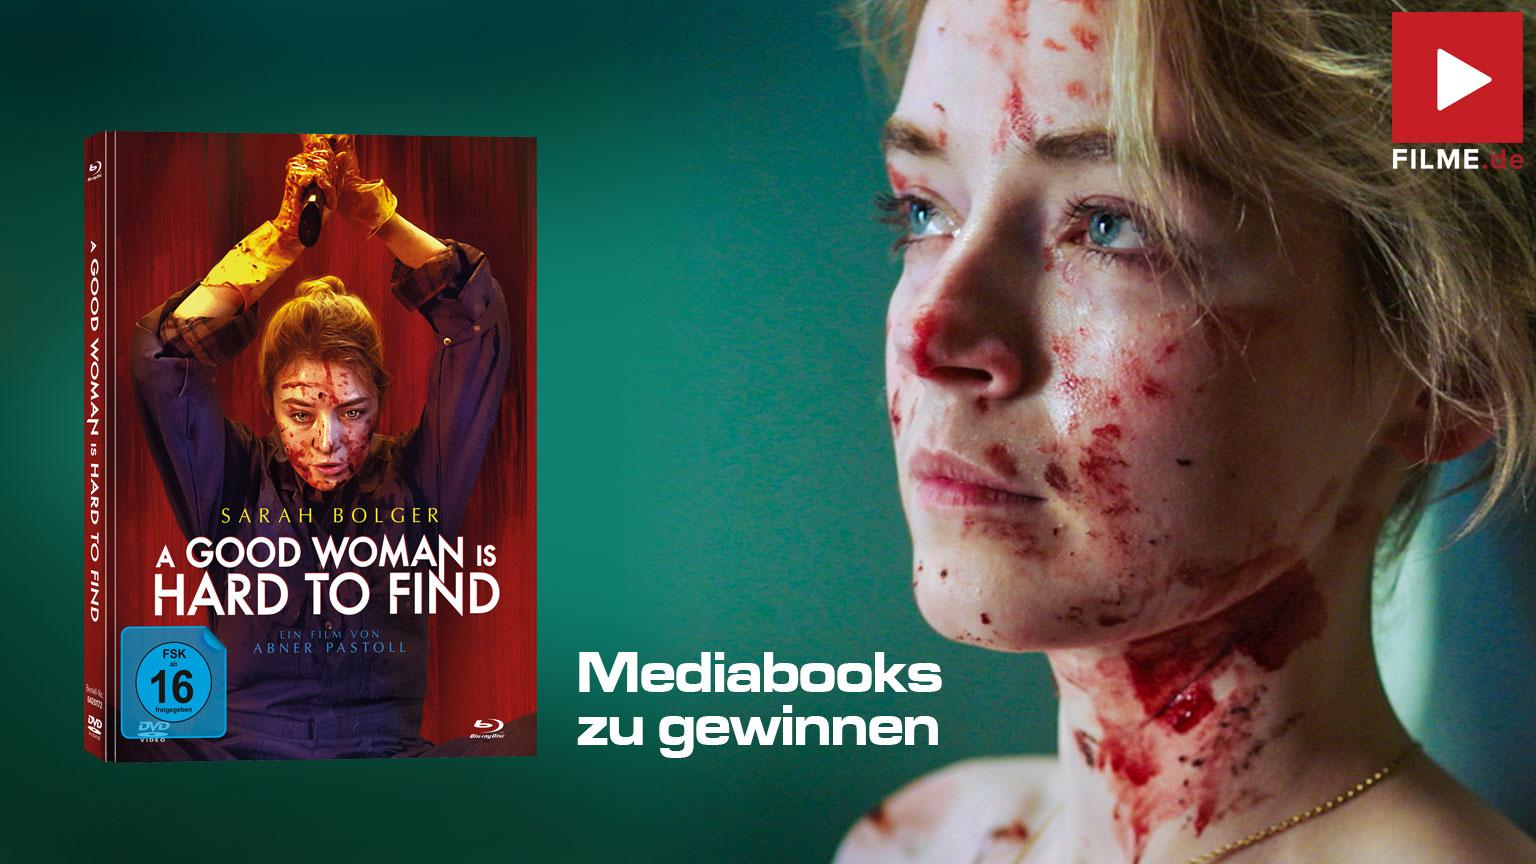 A Good Woman is hard to find Gewinnspiel gewinnen Artikelbild Mediabook